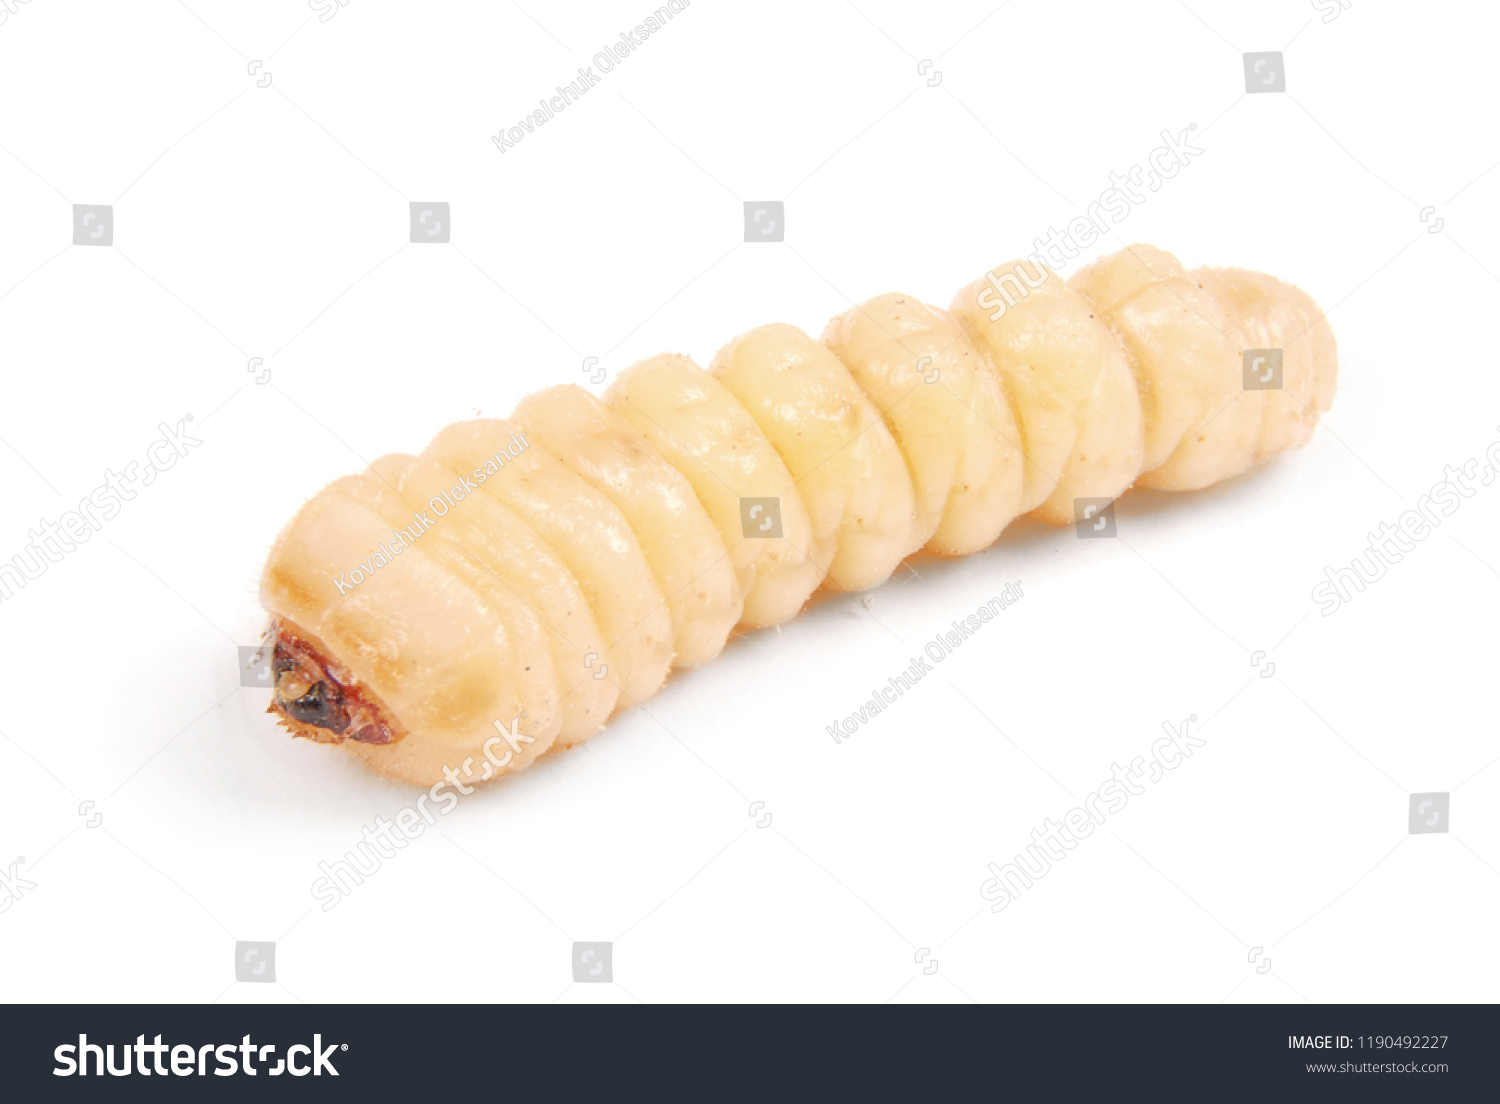 Larva bark beetle (Scolytinae). Larva of Bark beetles legless isolated on white background. #1190492227